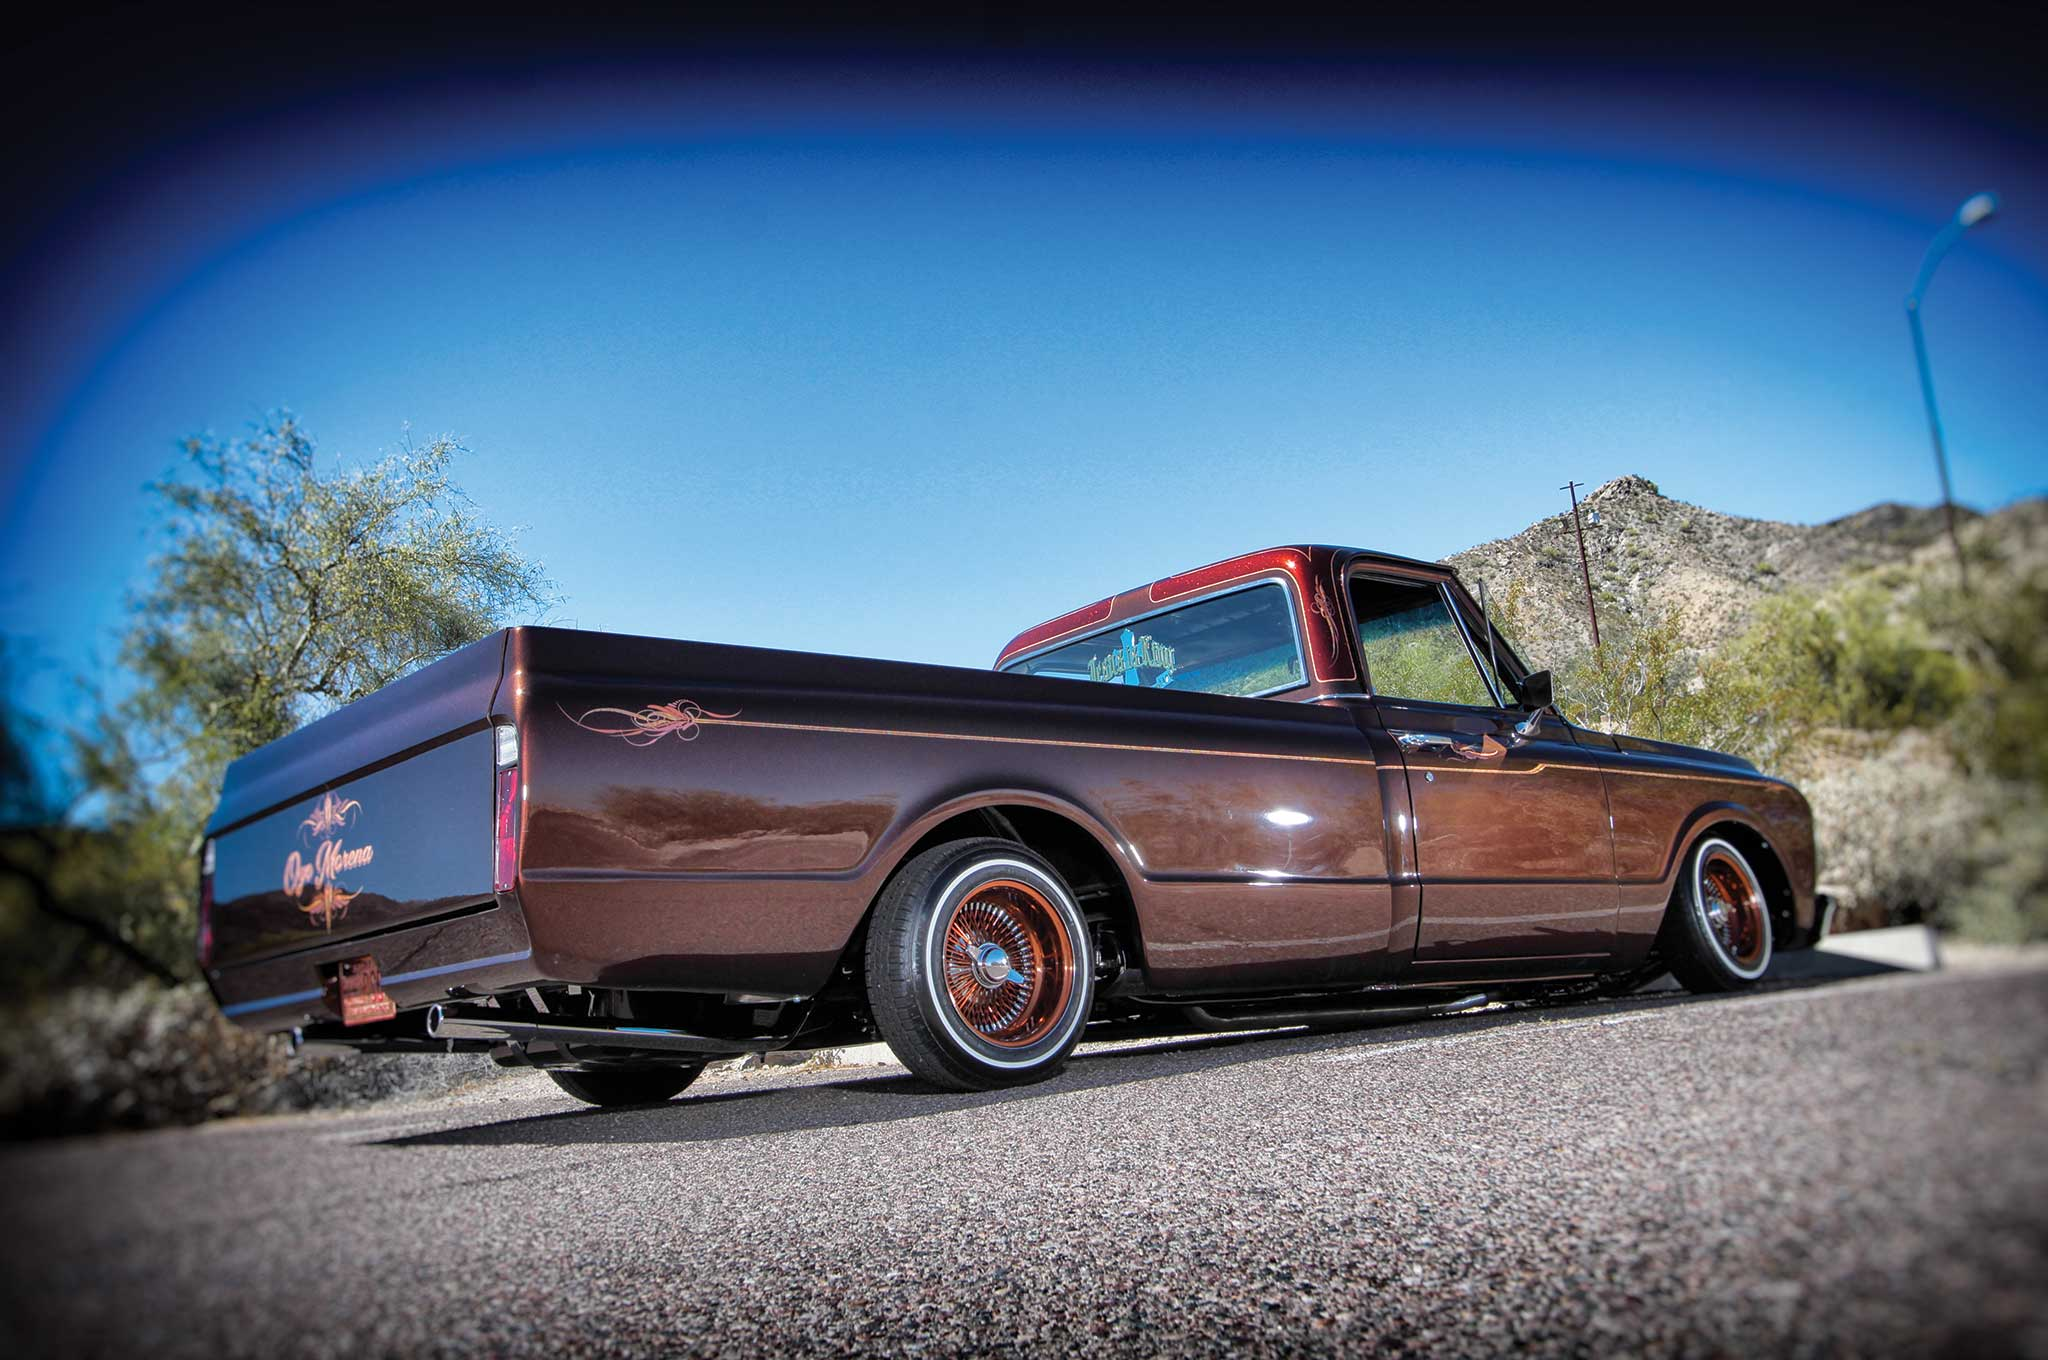 Though the '70s-type C10s have become very popular, a set of wires, tires, and Bugs Auto Art accents can sure separate this truck of the month from the rest.